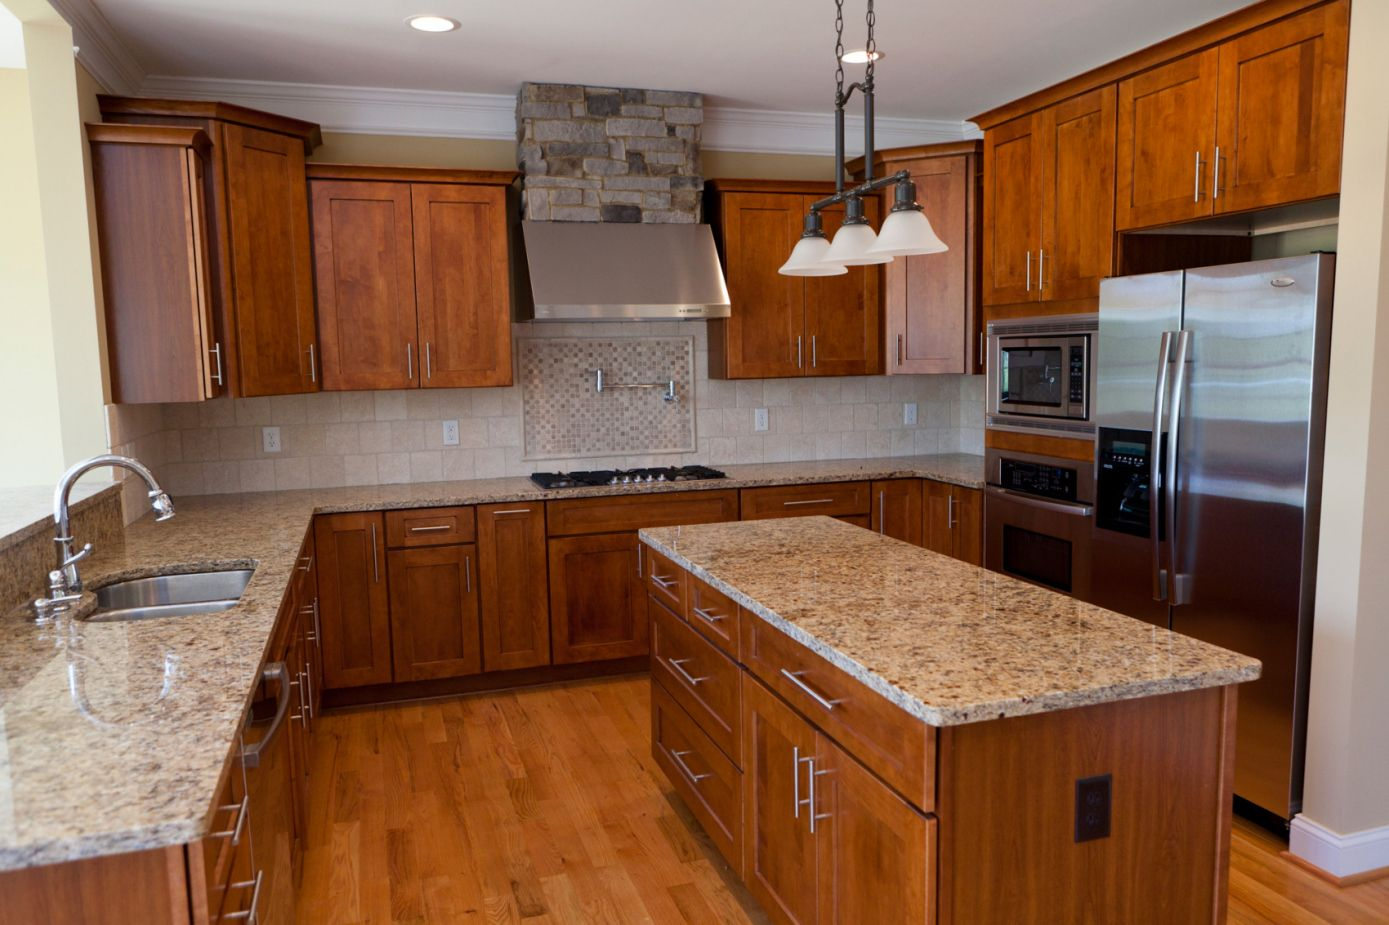 2018 Average Cost to Remodel A Kitchen - Interior Paint Colors for ...